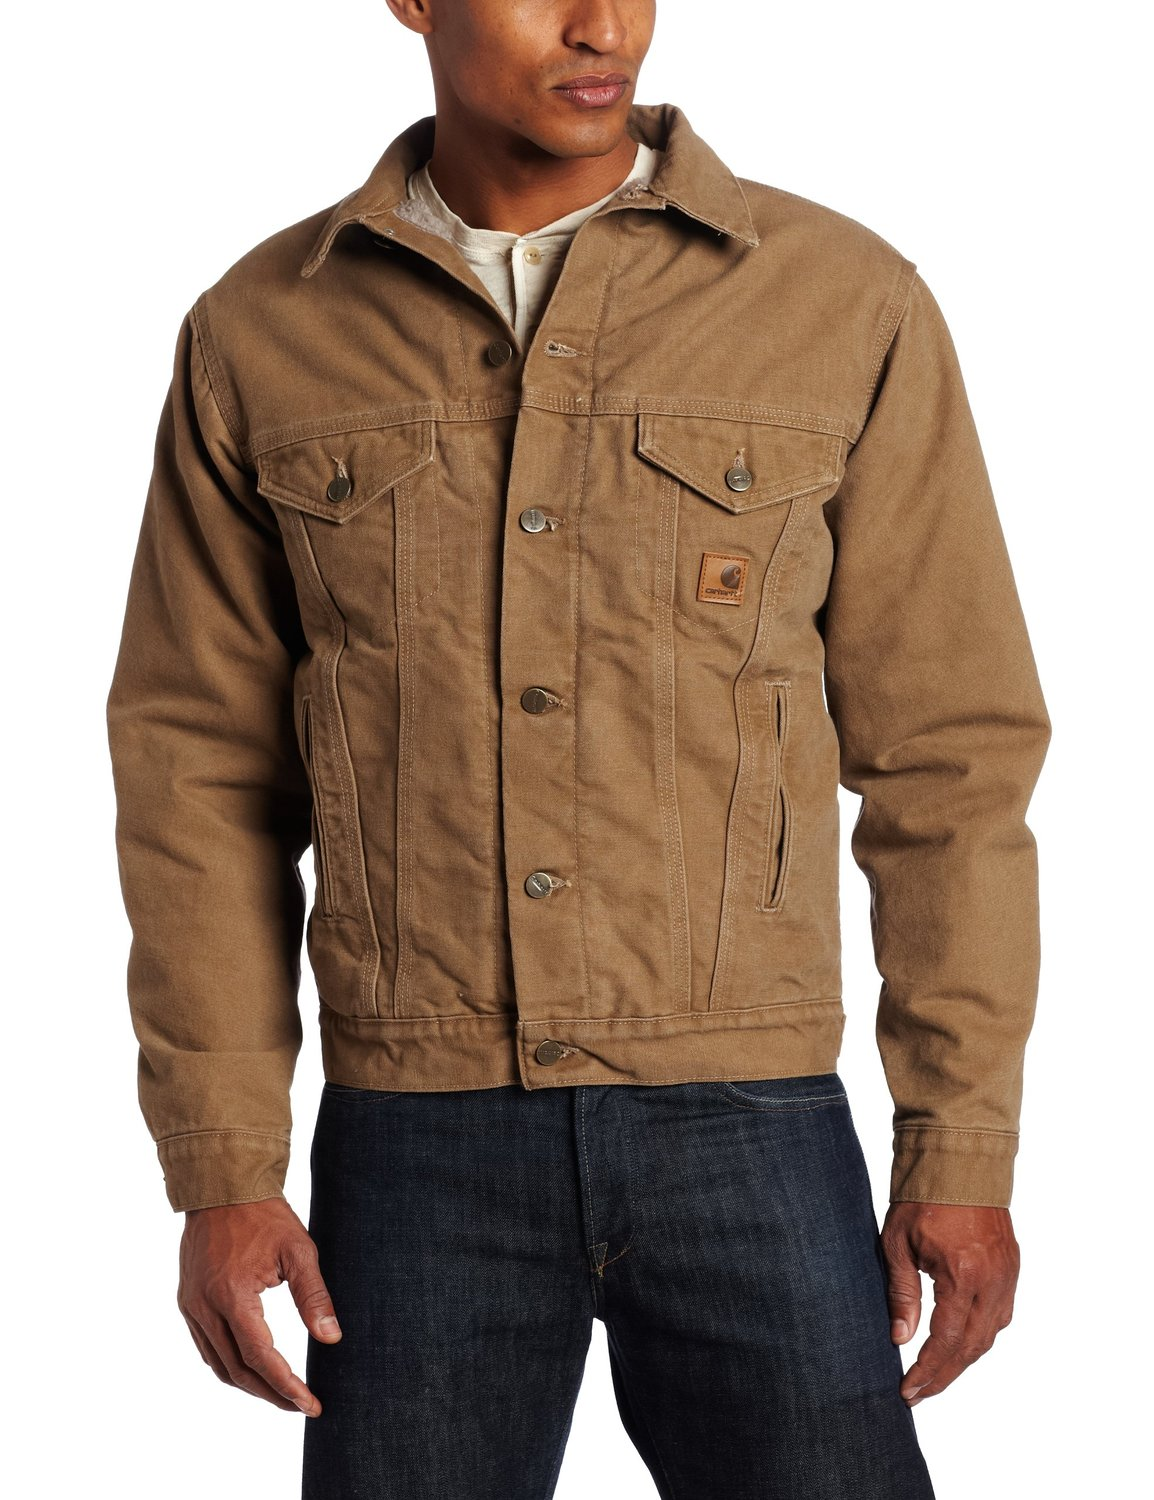 Amazon.com: Carhartt Men's Big-Tall Sandstone Duck Jean Jacket with Sherpa Lining: Denim Jackets: Clothing